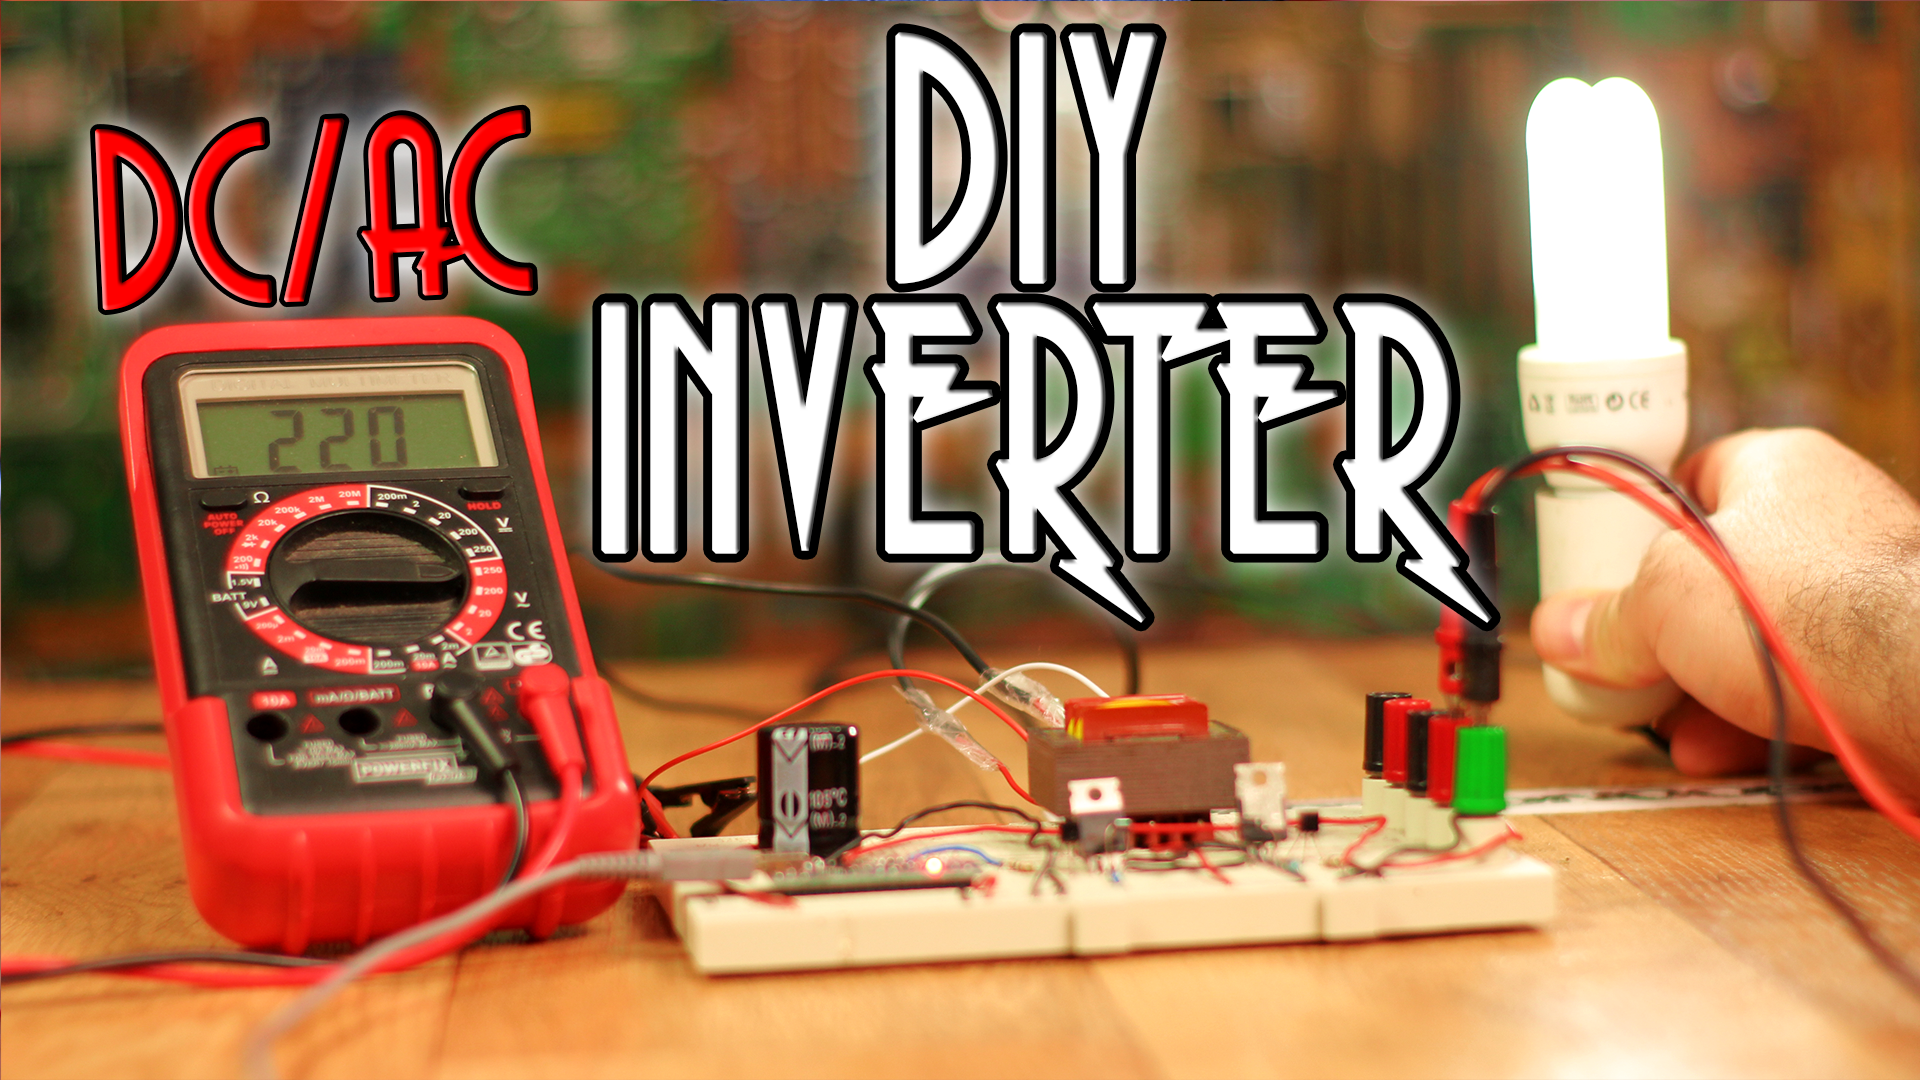 homemade inverter circuit